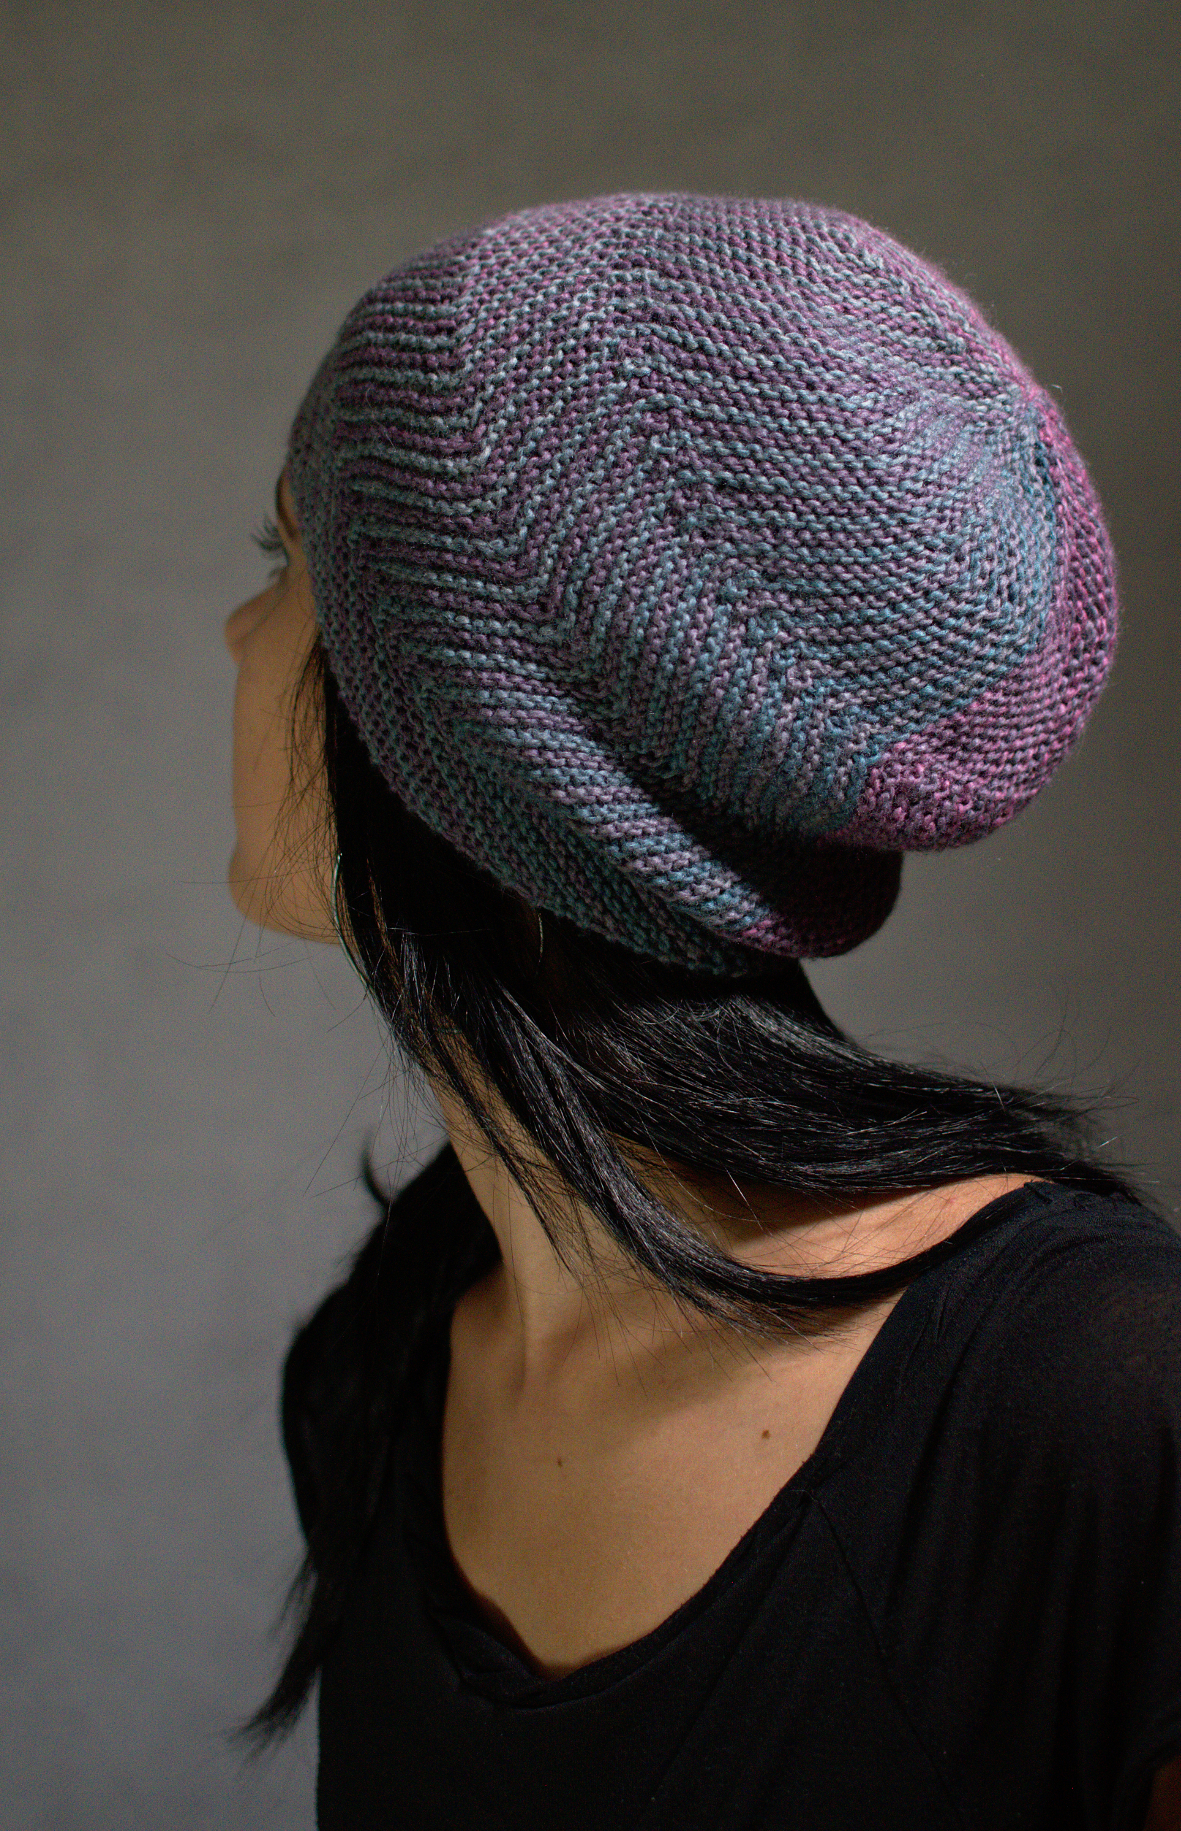 Juxta sideways knit Hat knitting pattern for gradient yarn